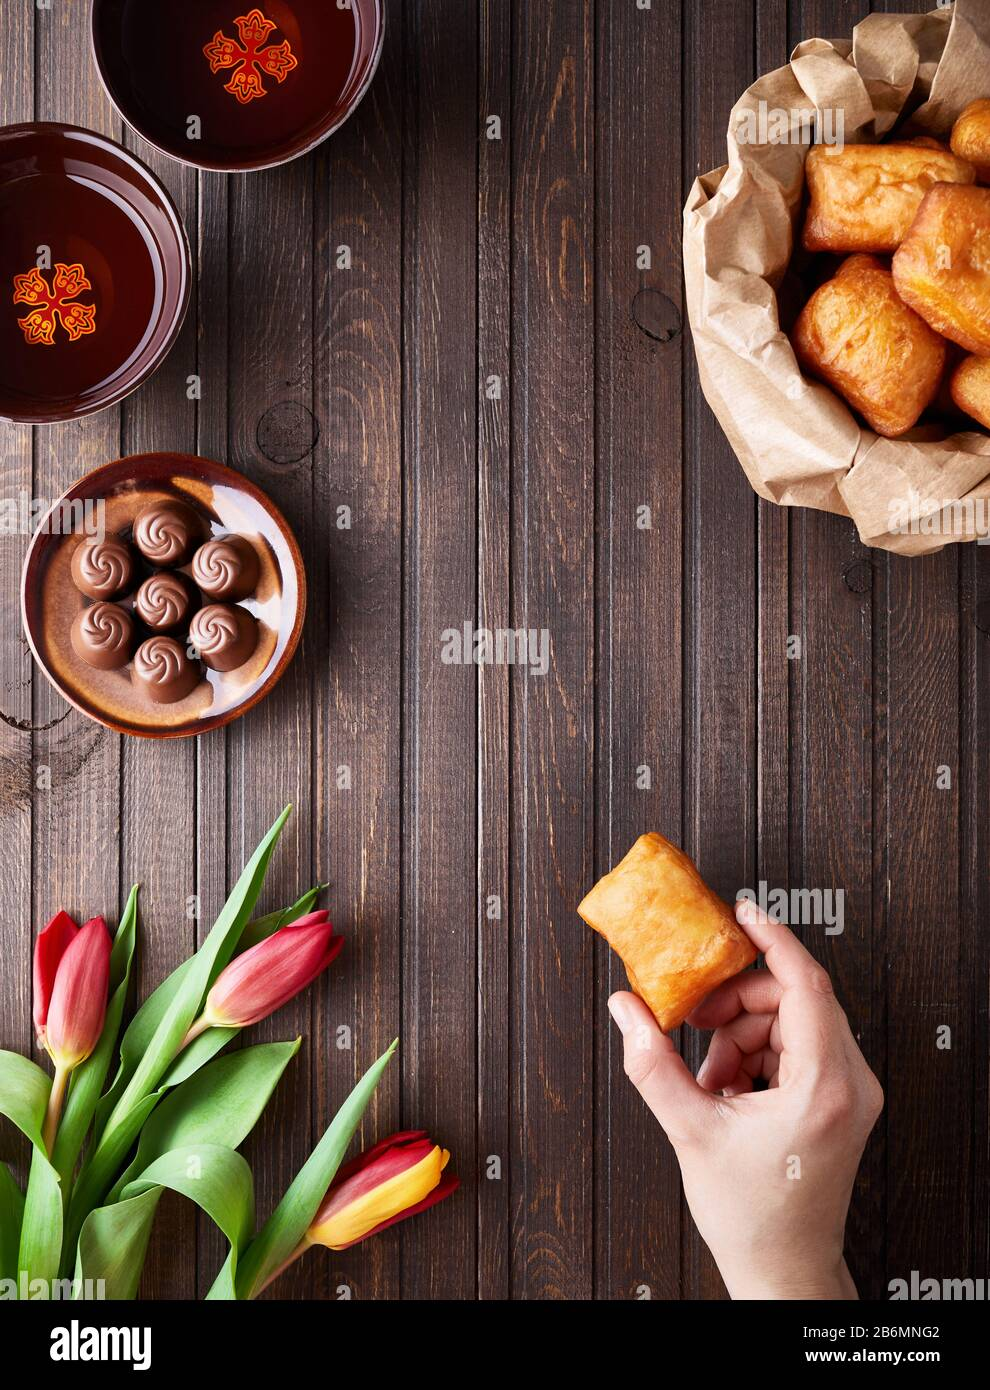 Kazakh national food and tulips during Nauryz festival on wooden brown background top view. Stock Photo